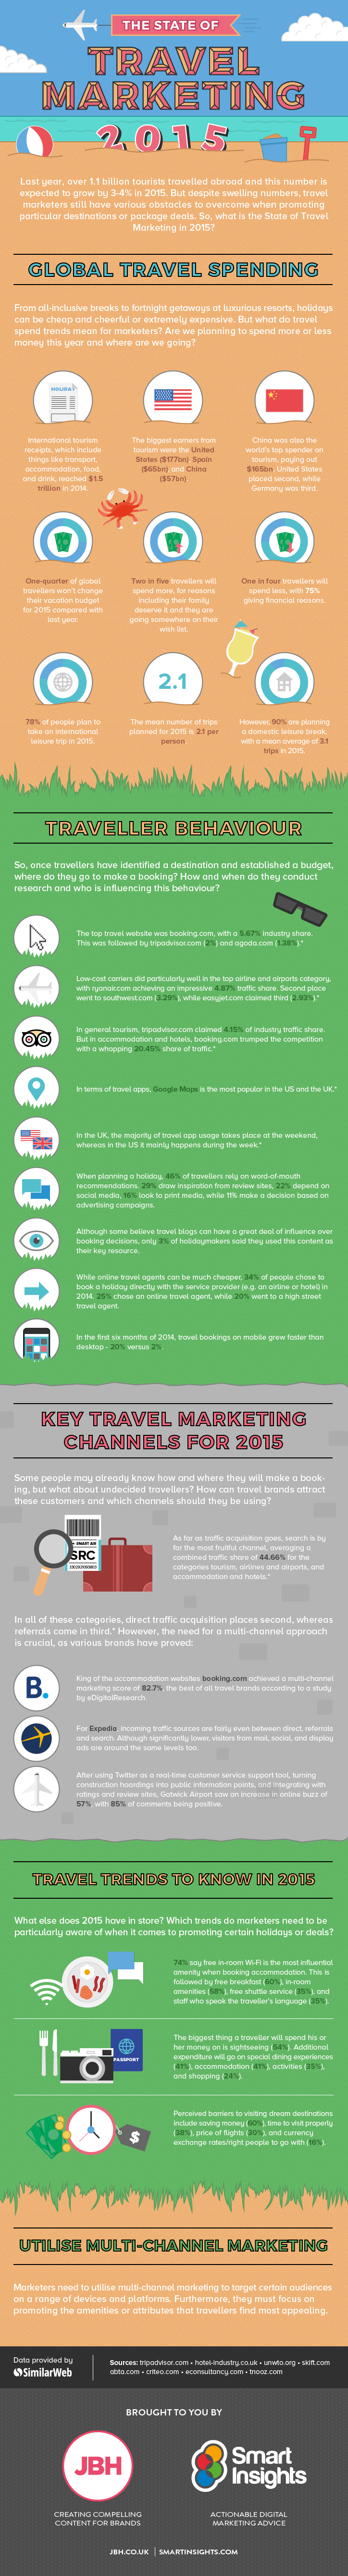 Travel marketing infographic SI004